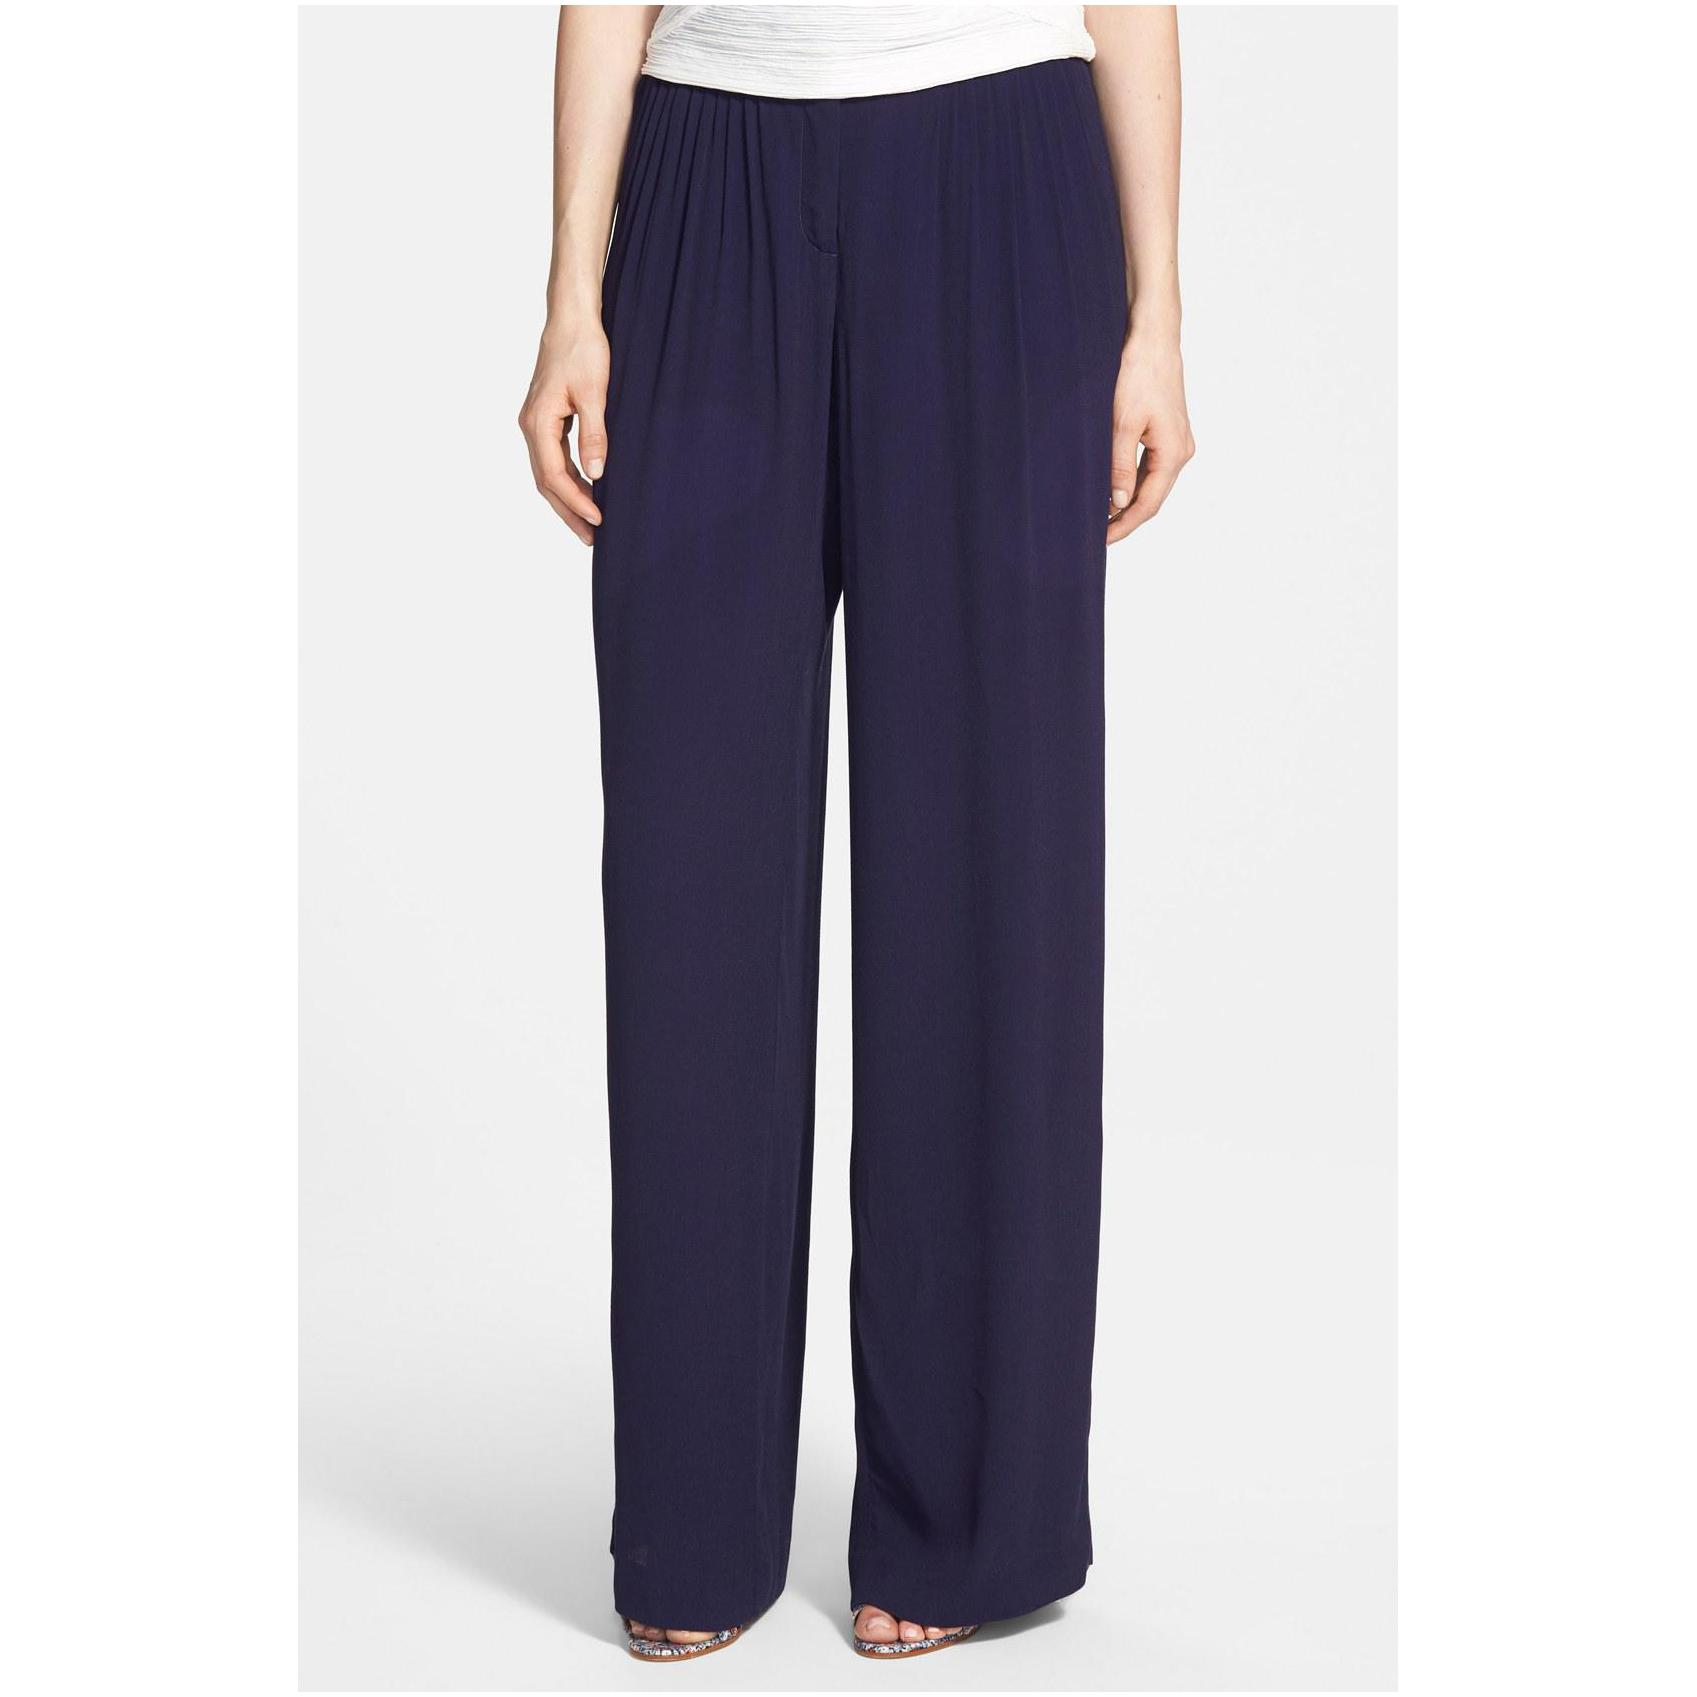 wide leg pants womens photo - 2